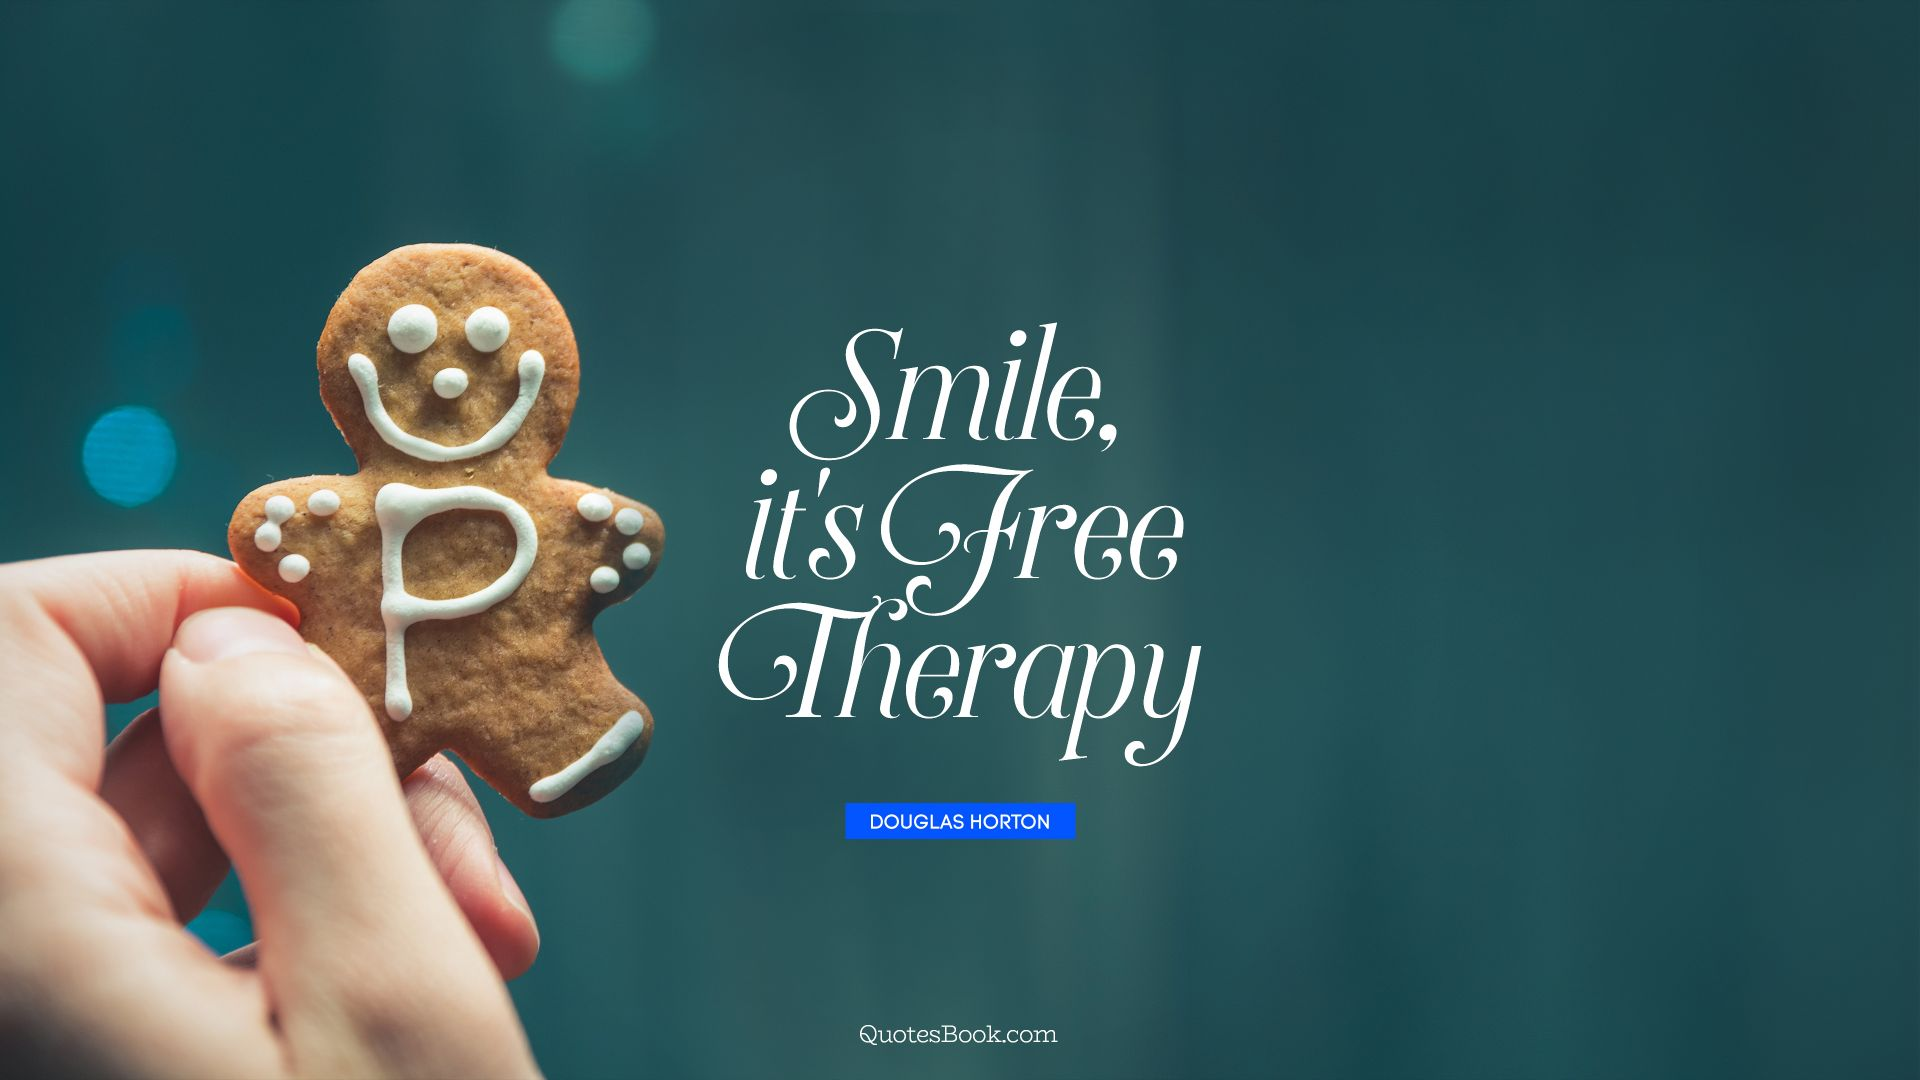 Smile, it's free therapy. - Quote by Douglas Horton